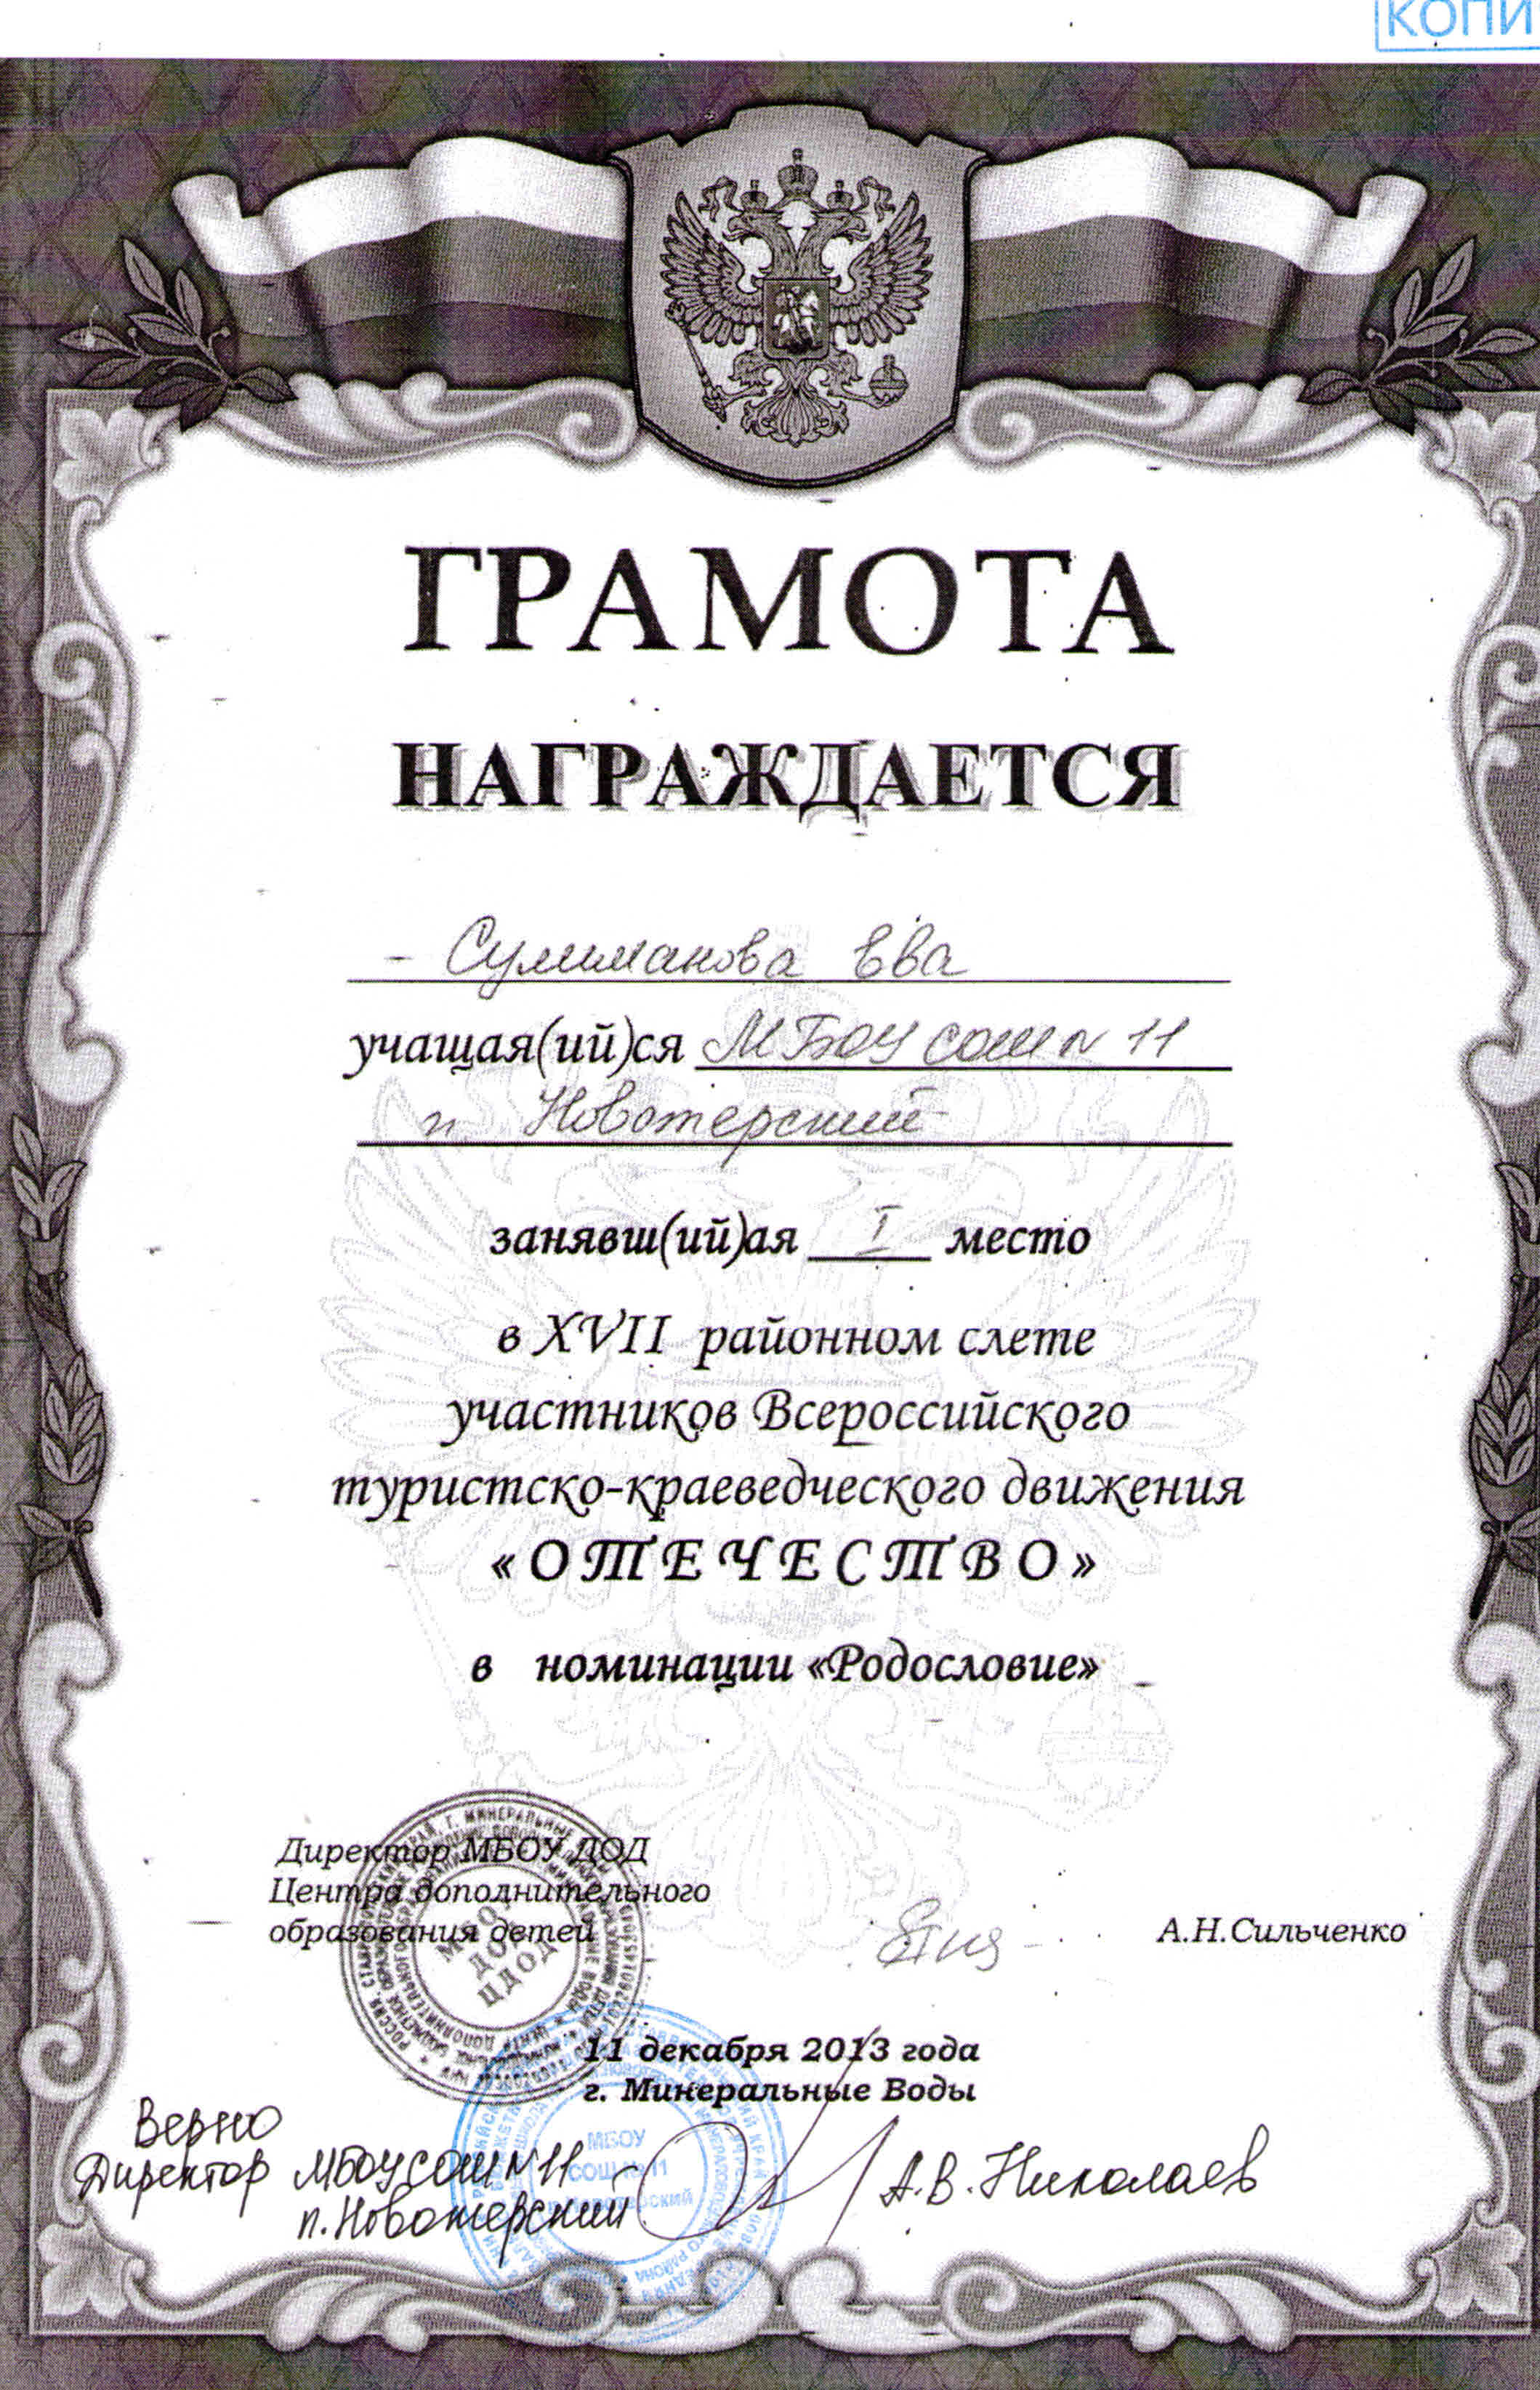 C:\Users\Сергей\Desktop\Document_20.jpg